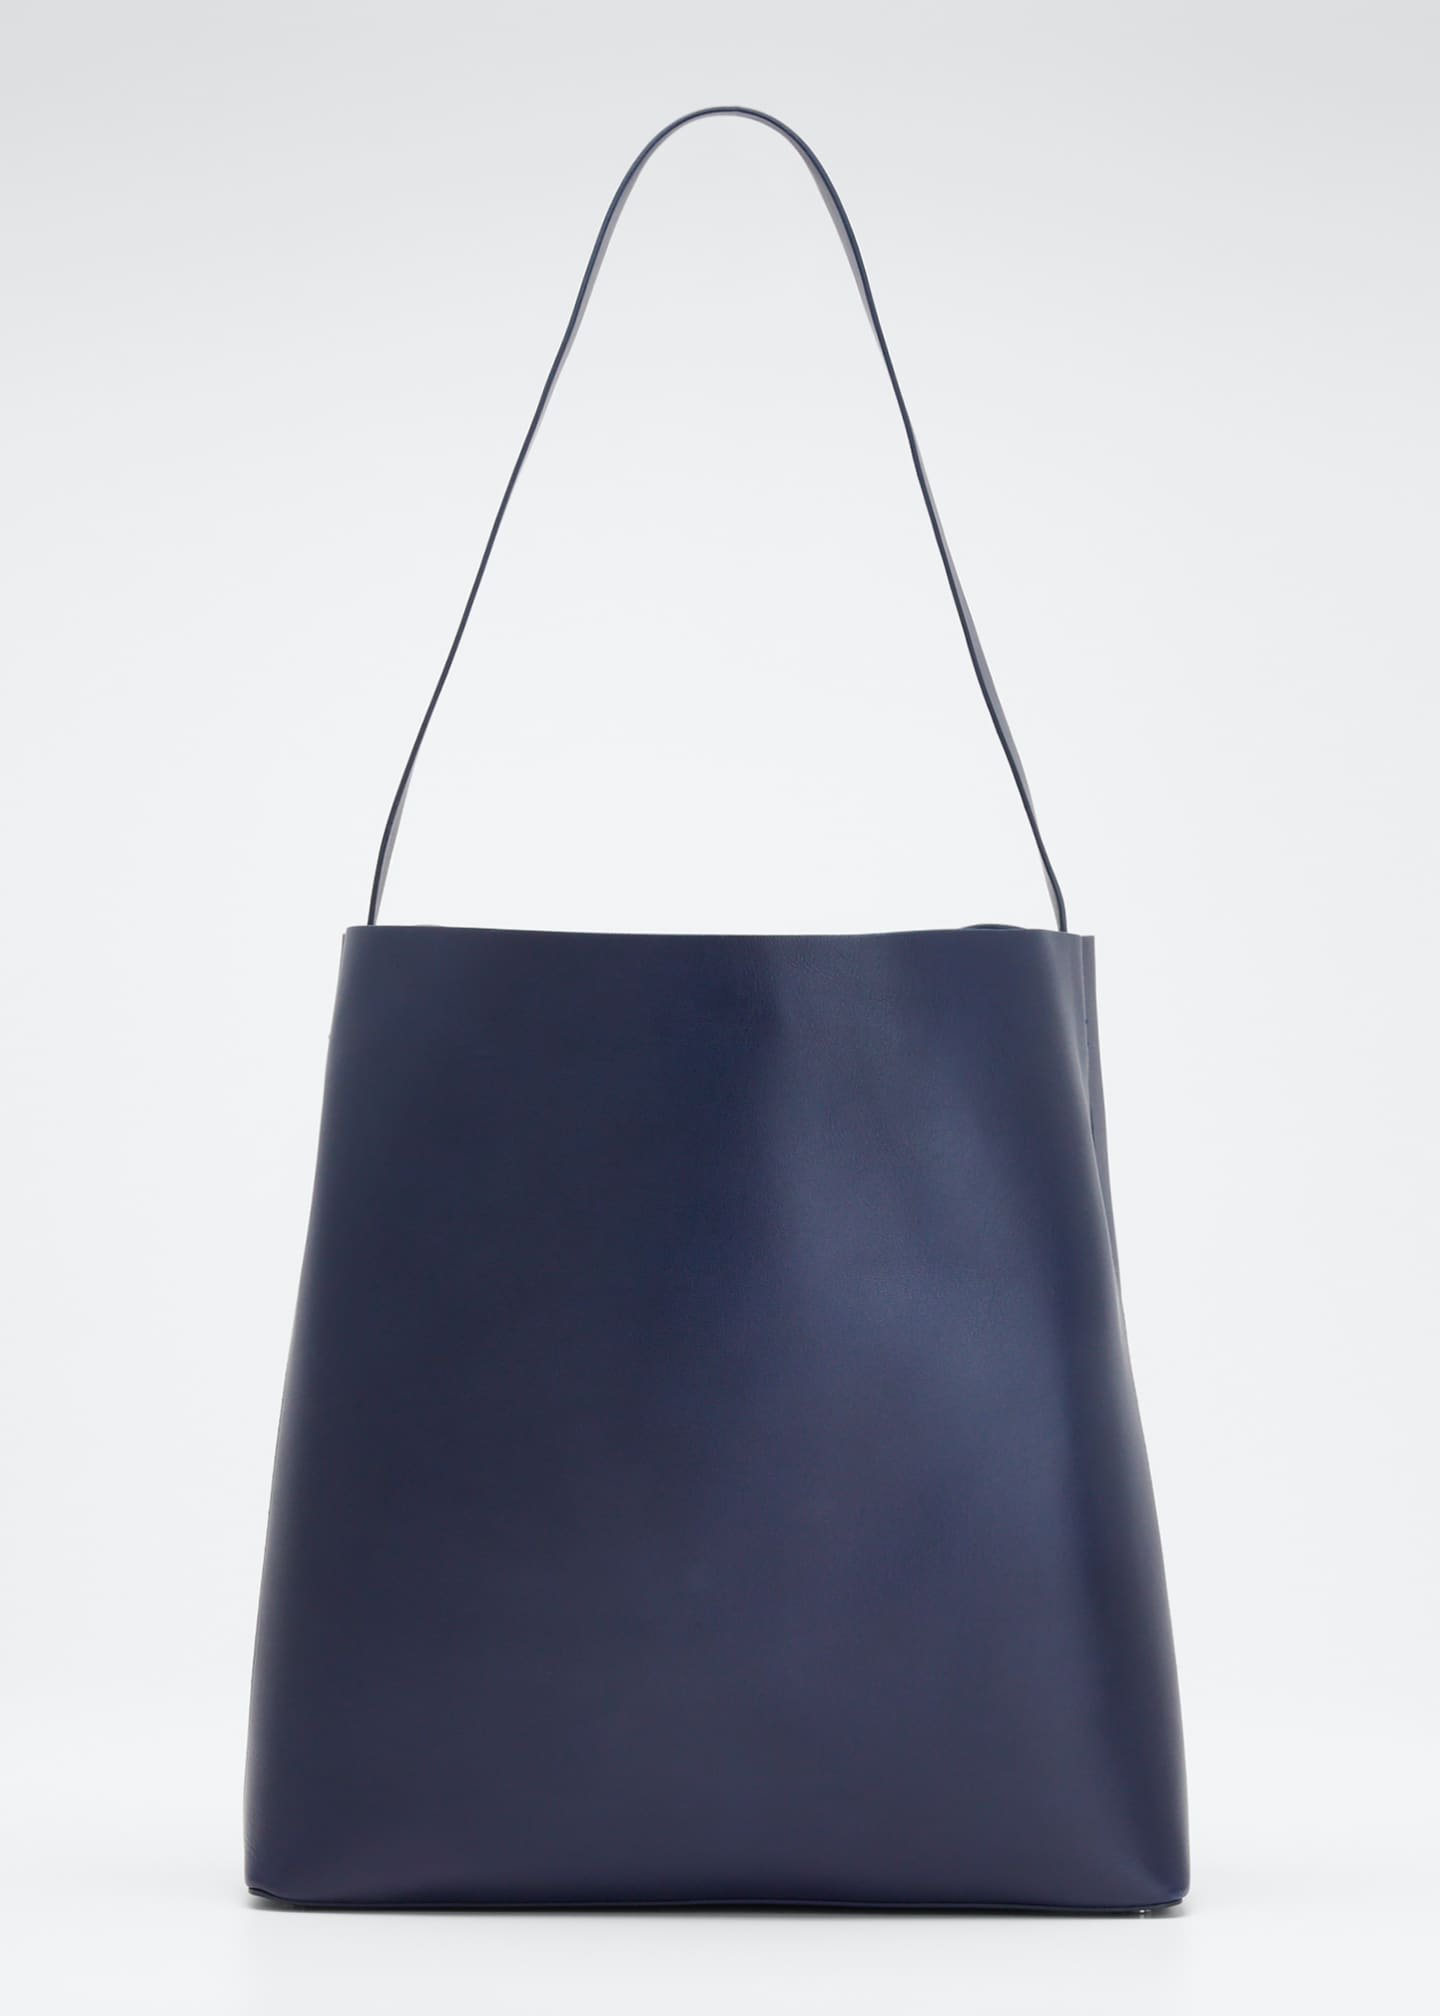 Aesther Ekme Soft Leather Sac Tote Bag, Navy